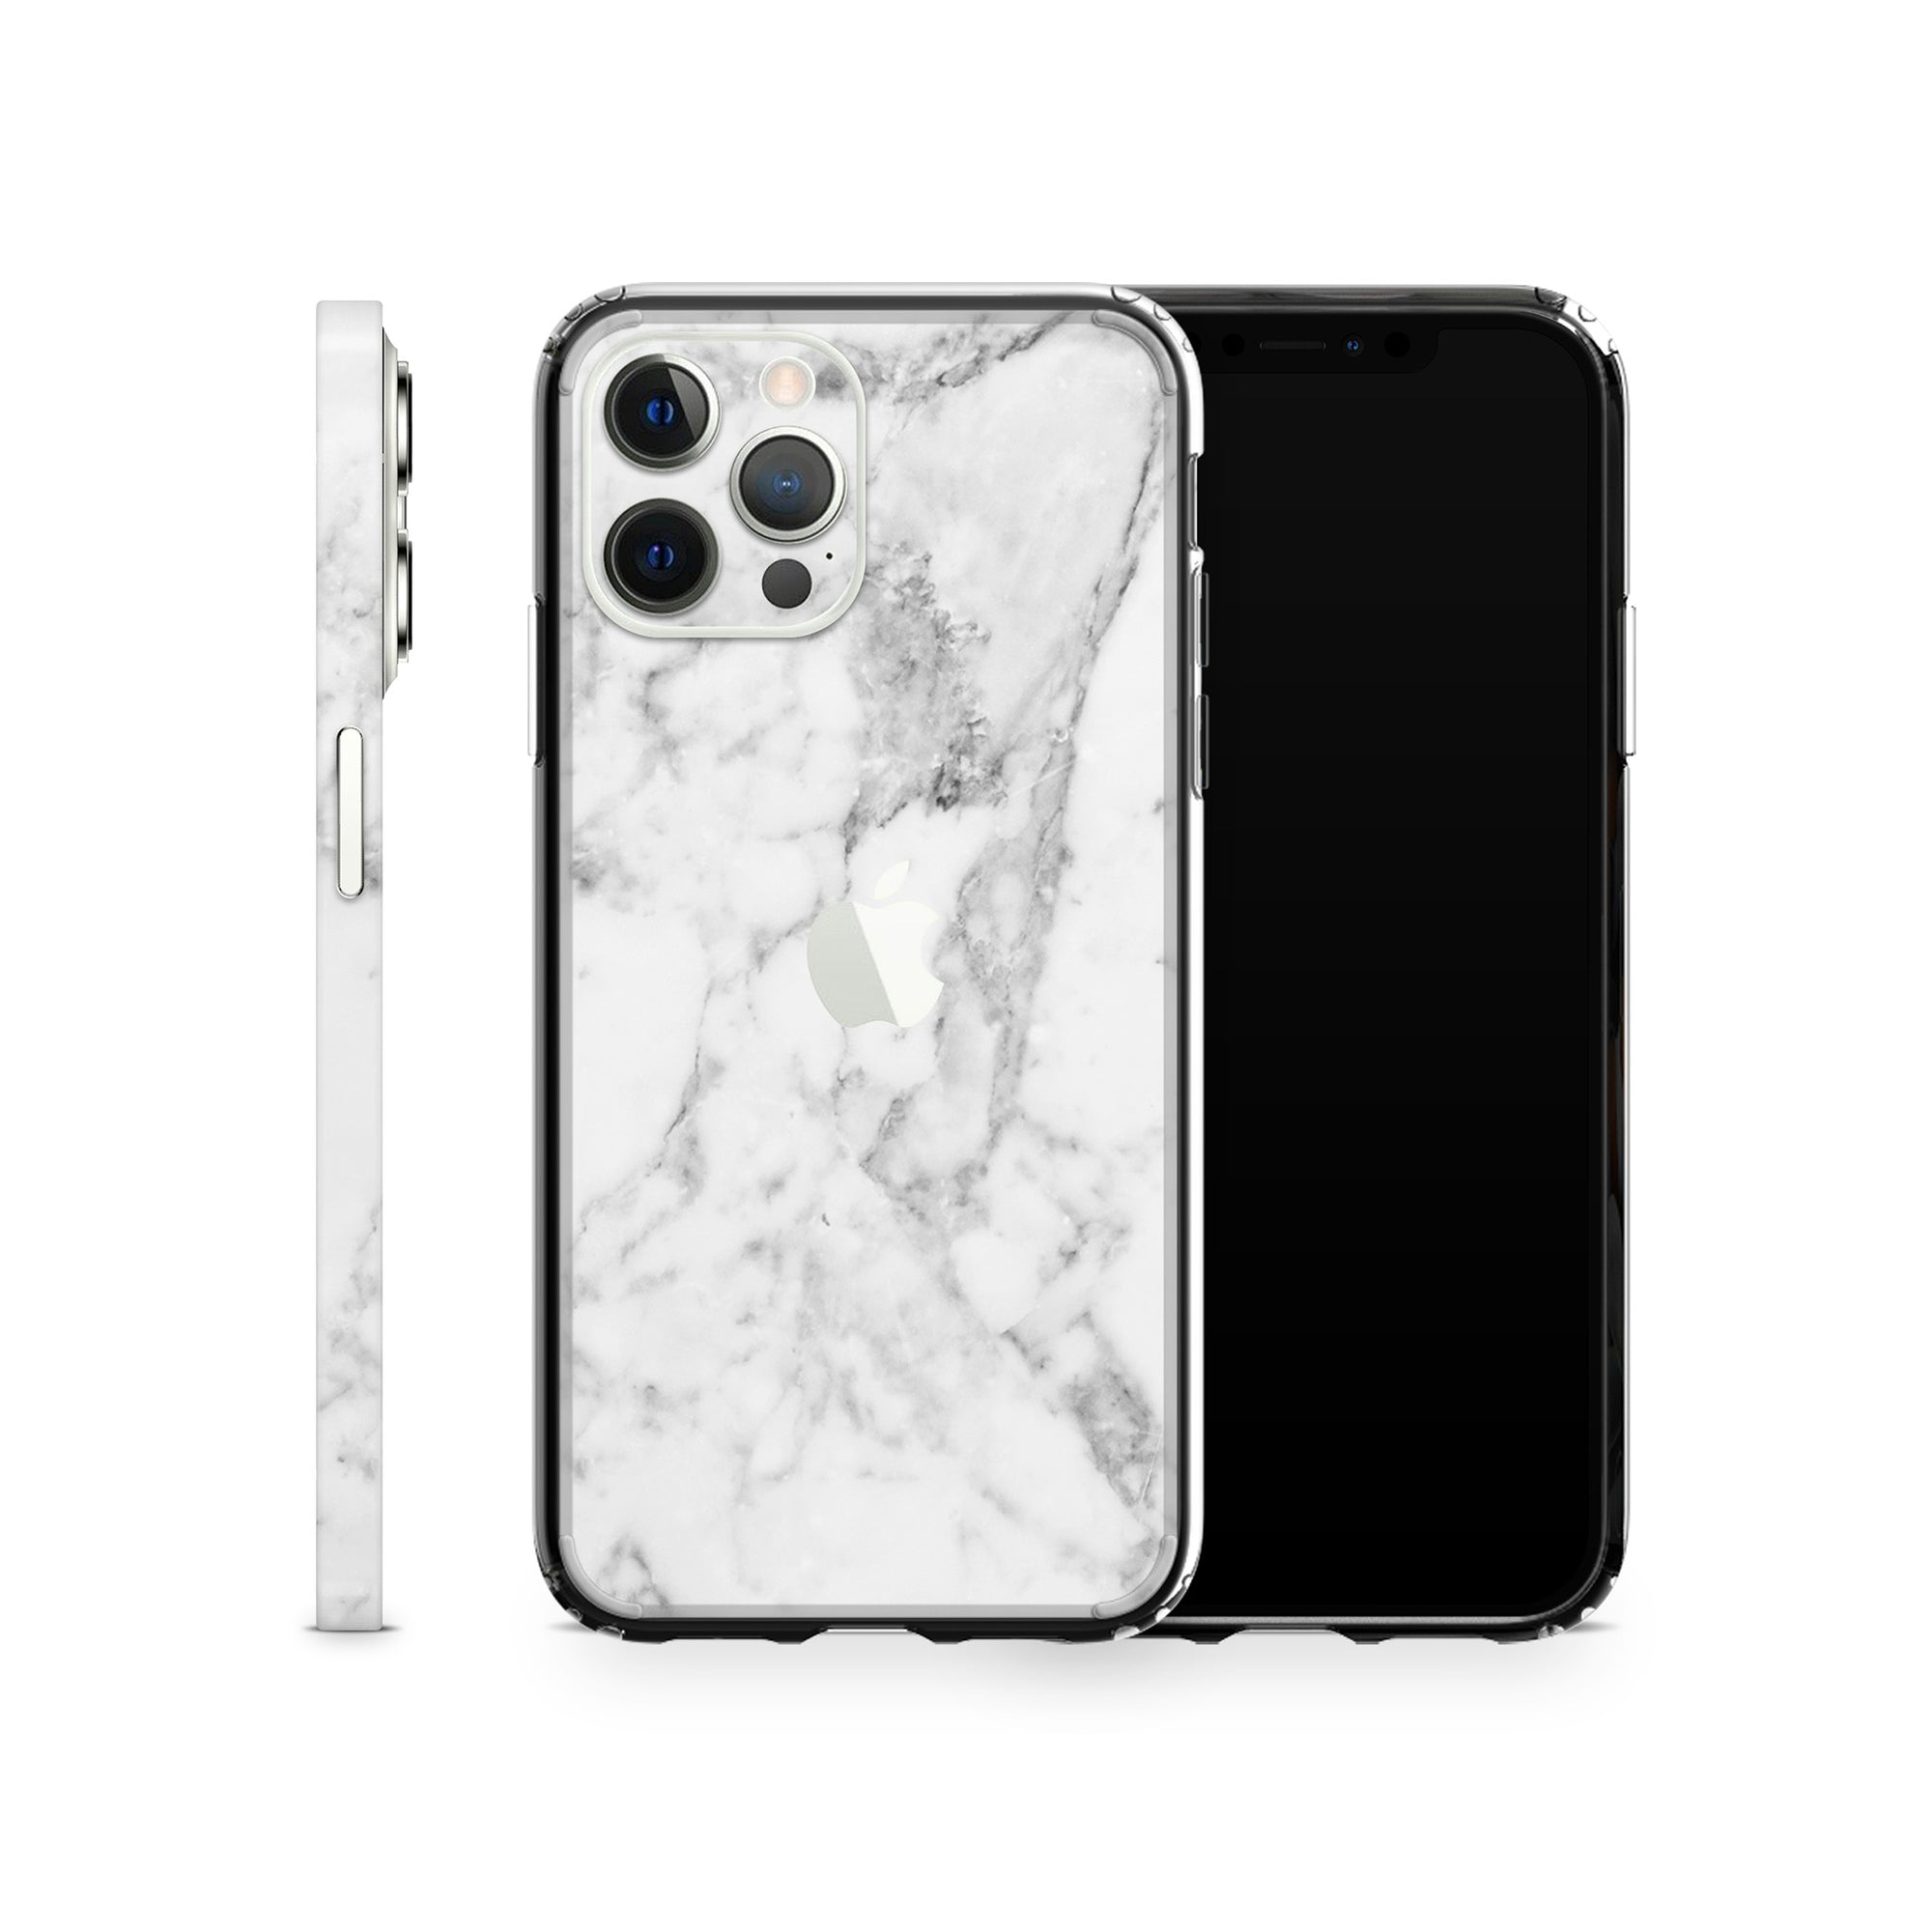 iPhone Case 12 Pro Max White Marble